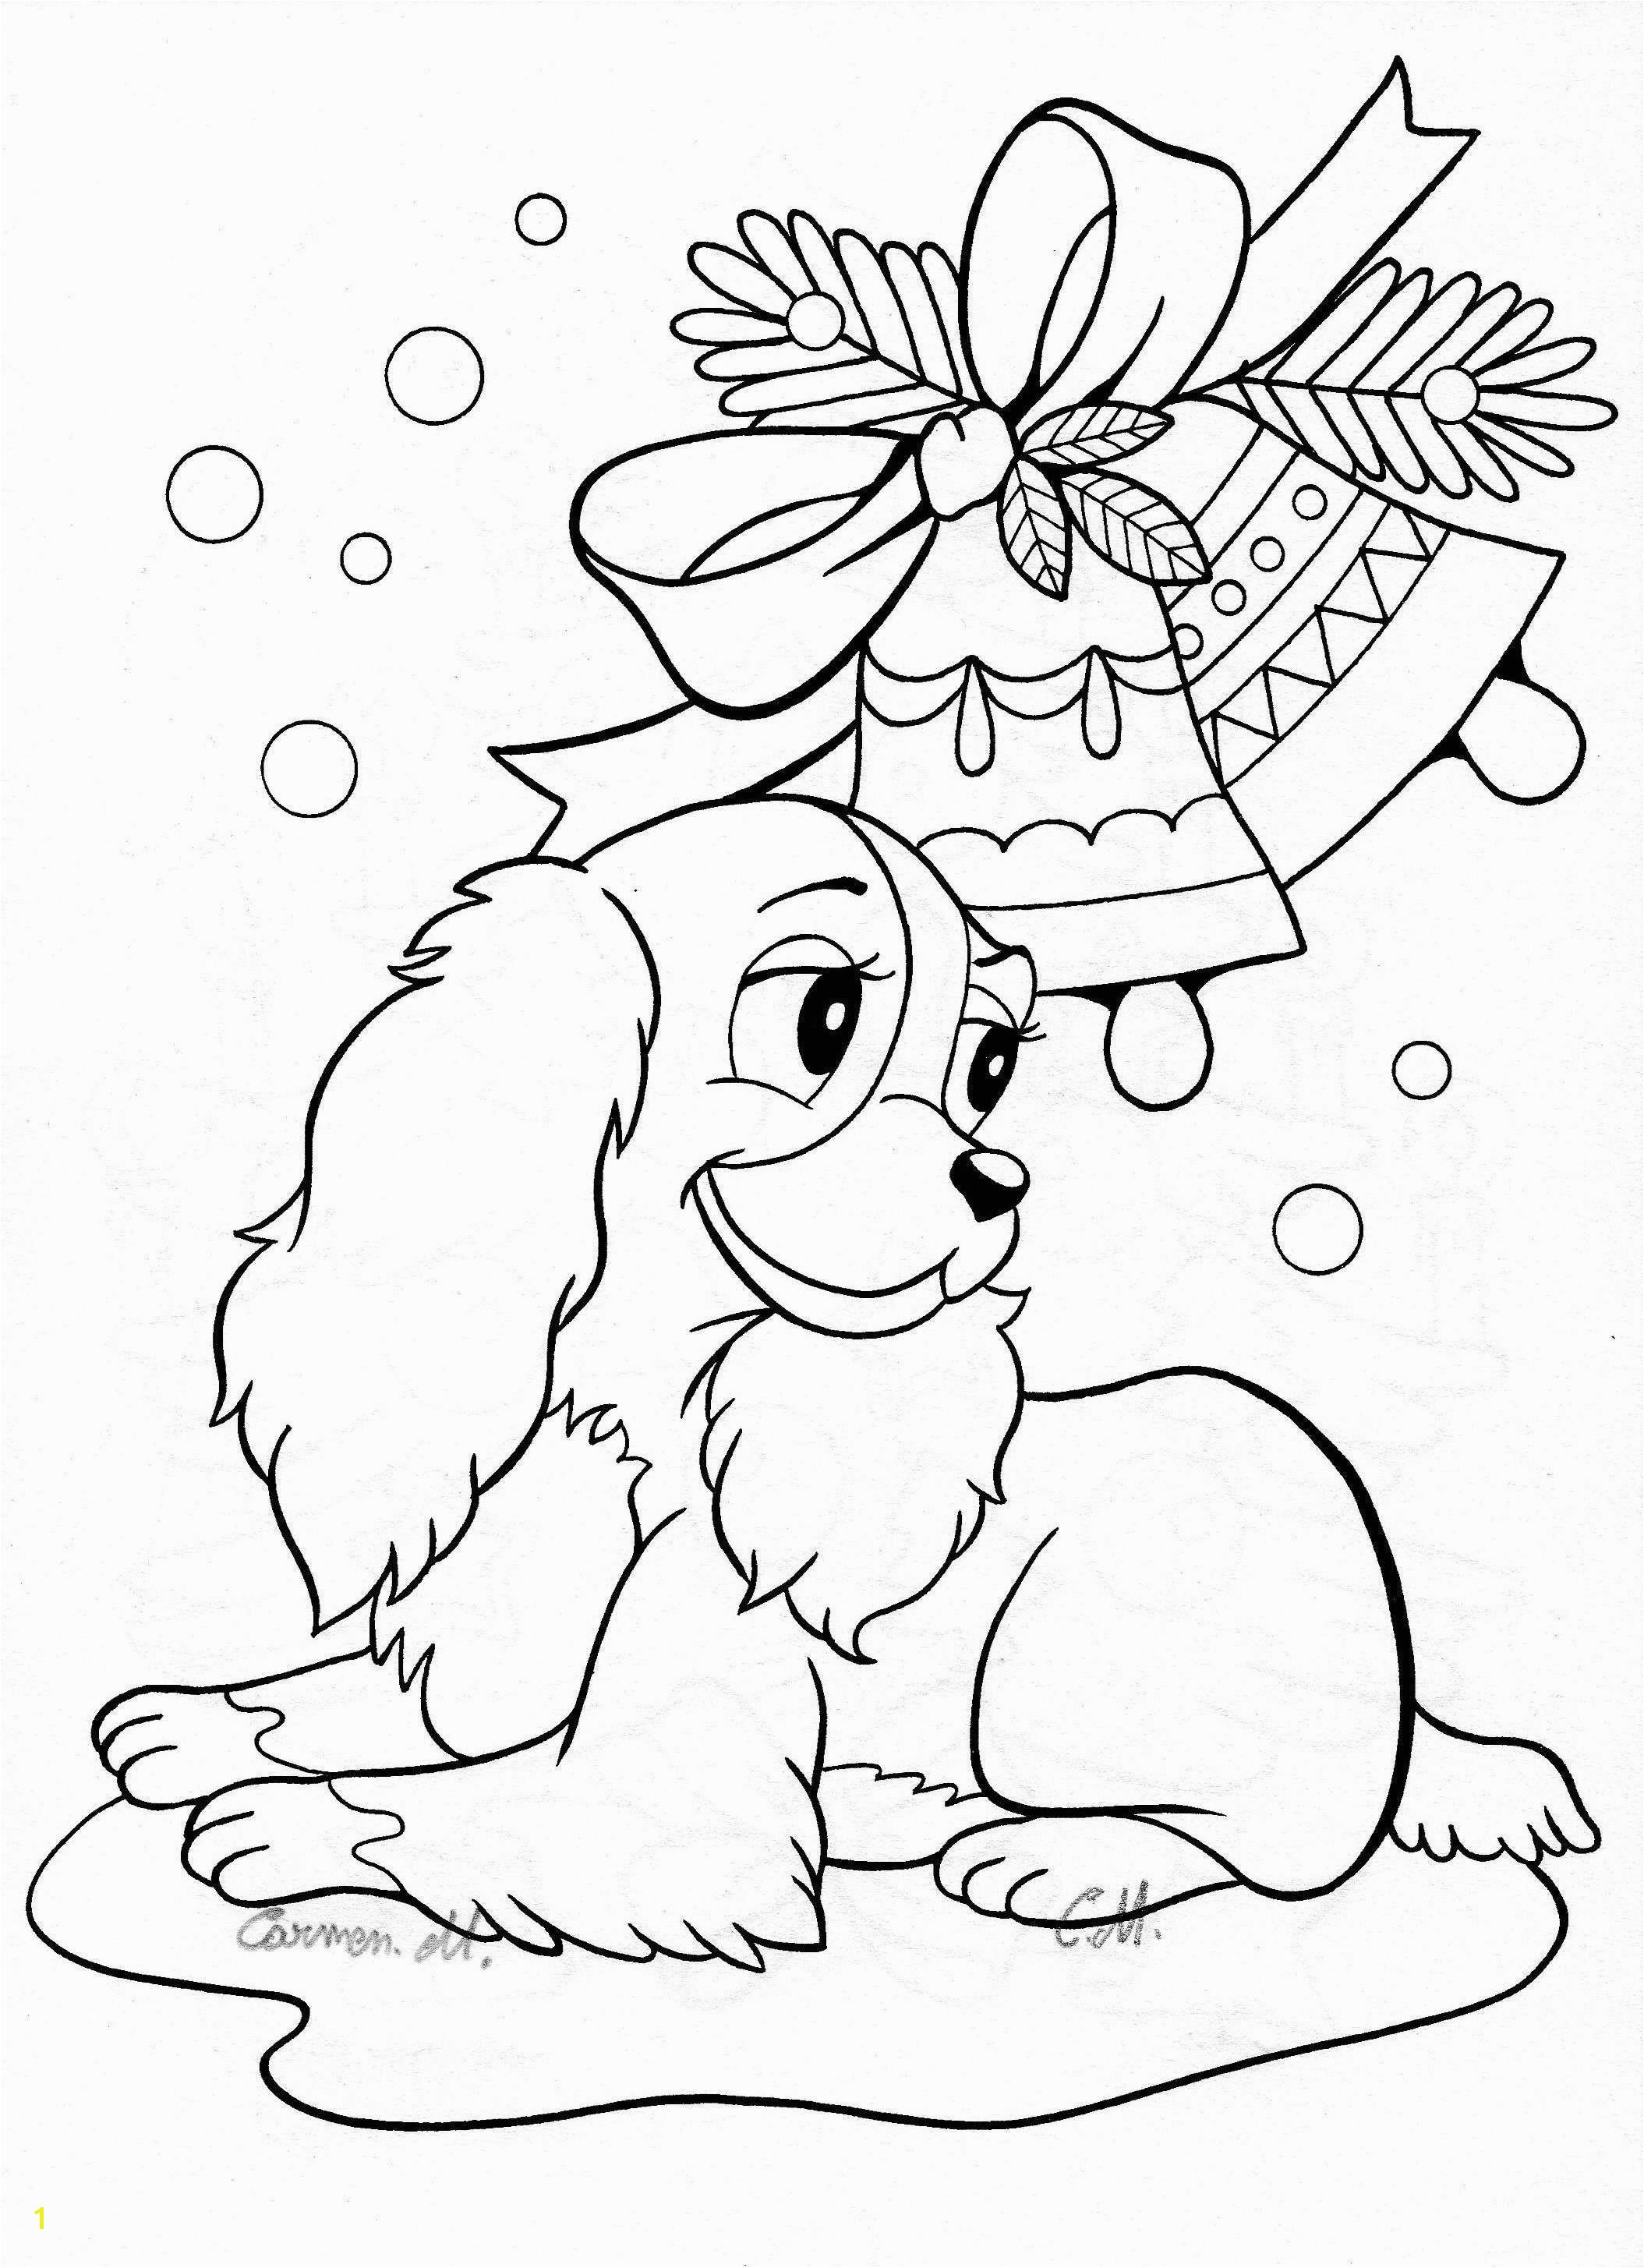 Coloring Pages Disney Babies Princesses Free Coloring Sheets All Disney Princess to Color Free Coloring Sheets